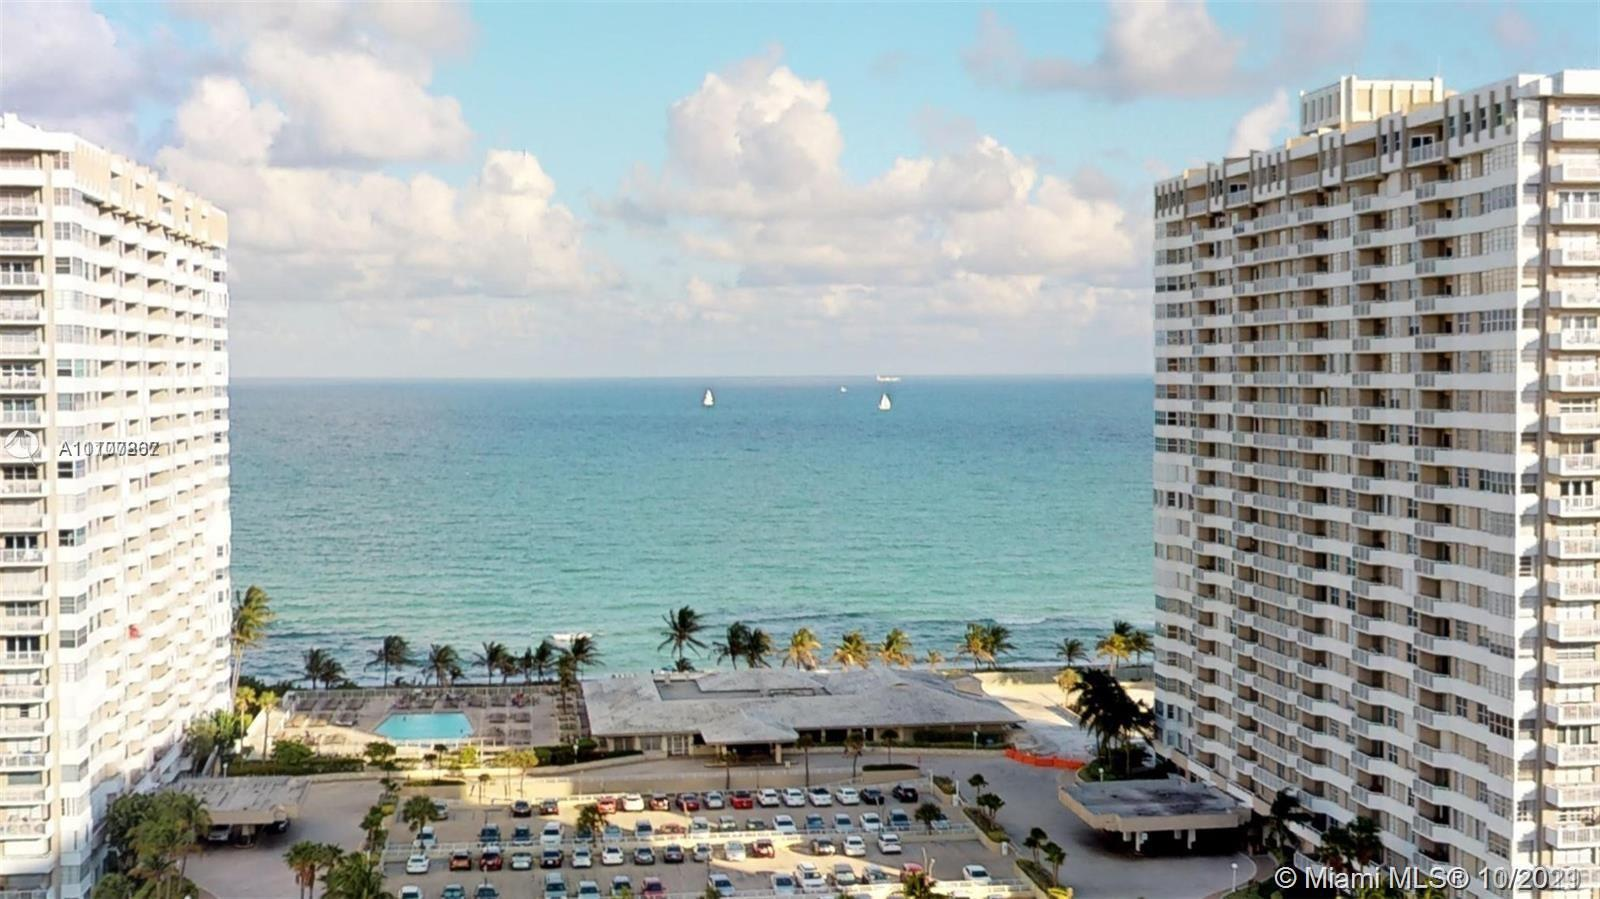 Oceanfront! New Impact windows and doors! Tastefully renovated 2bed/2 bath unit for low floor lovers